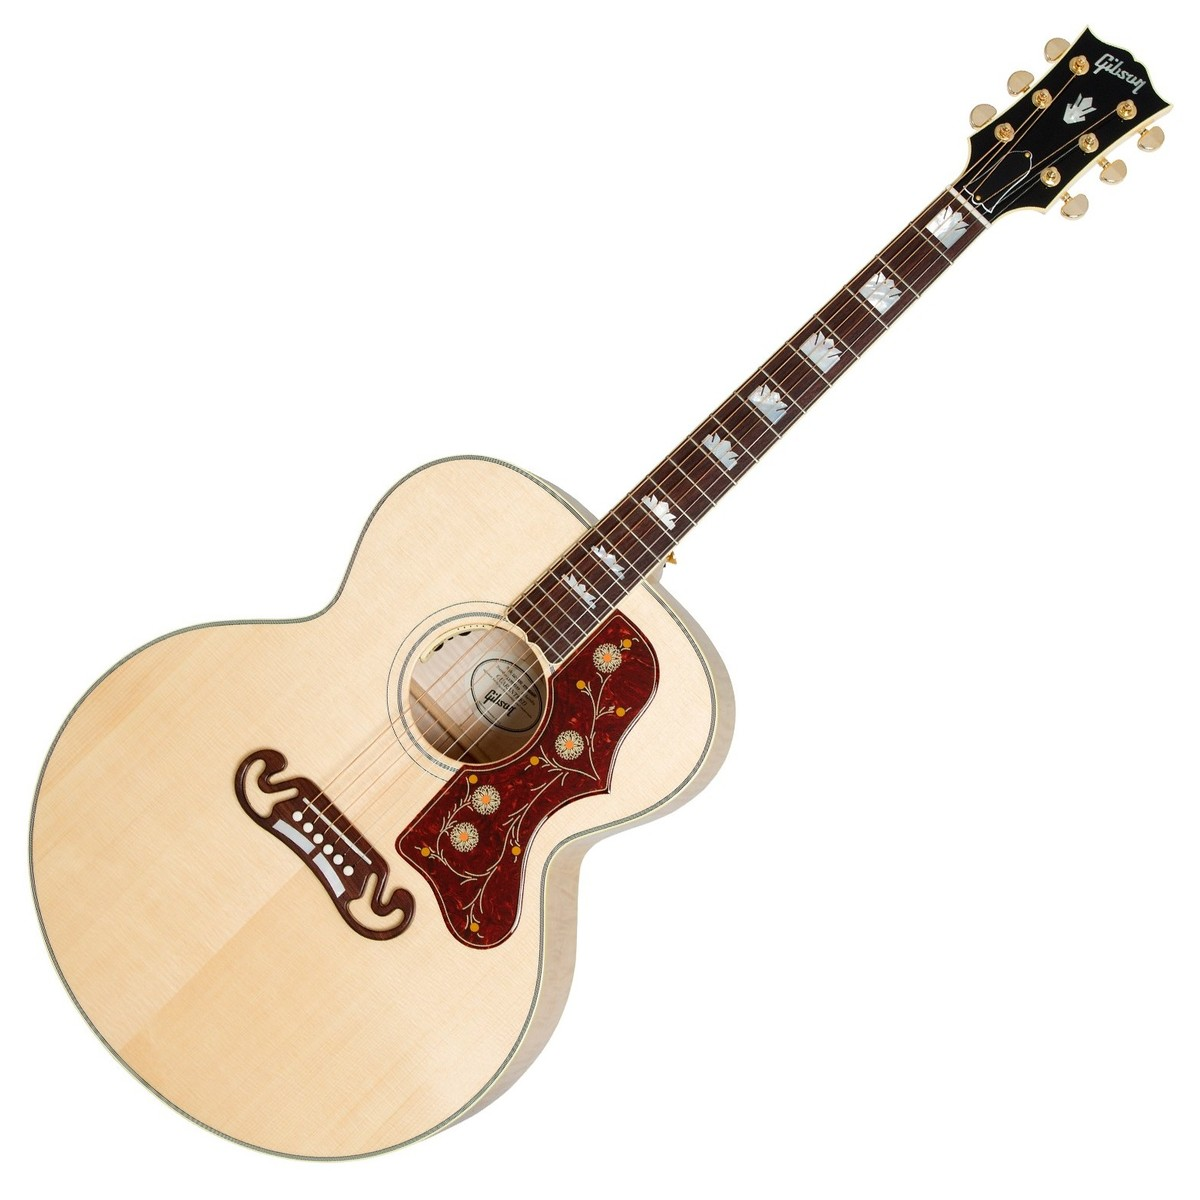 Gibson dating system